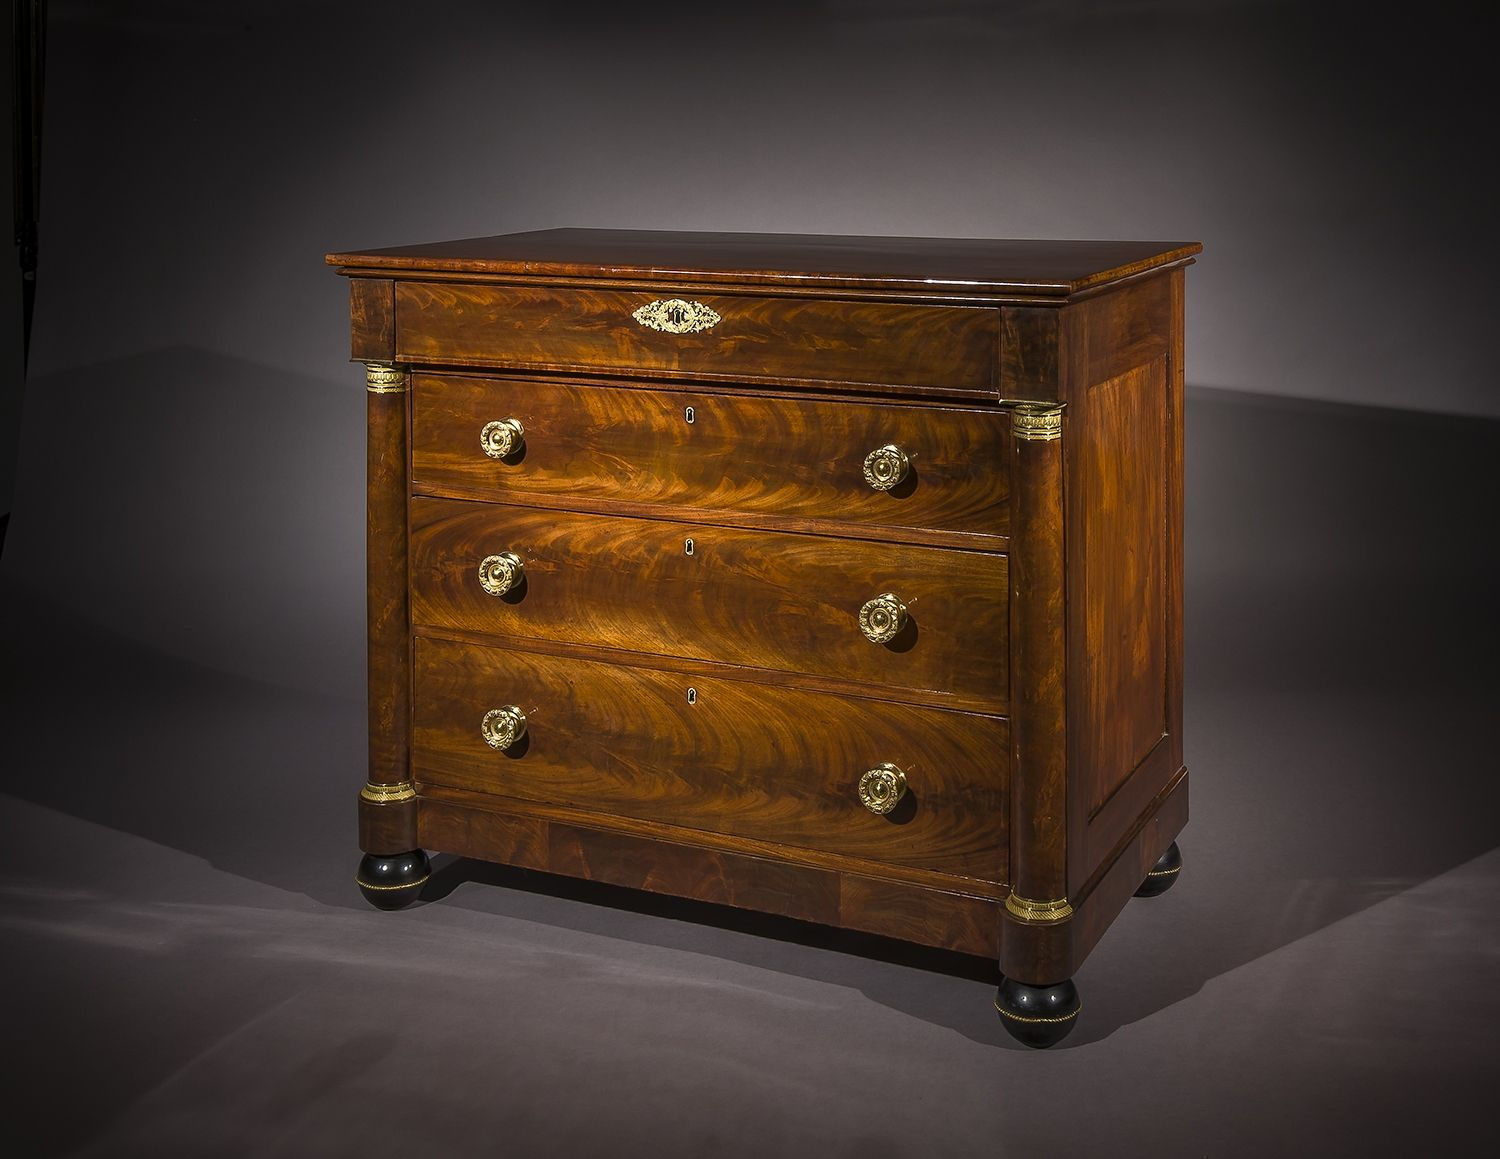 Chest of Drawers, about 1820